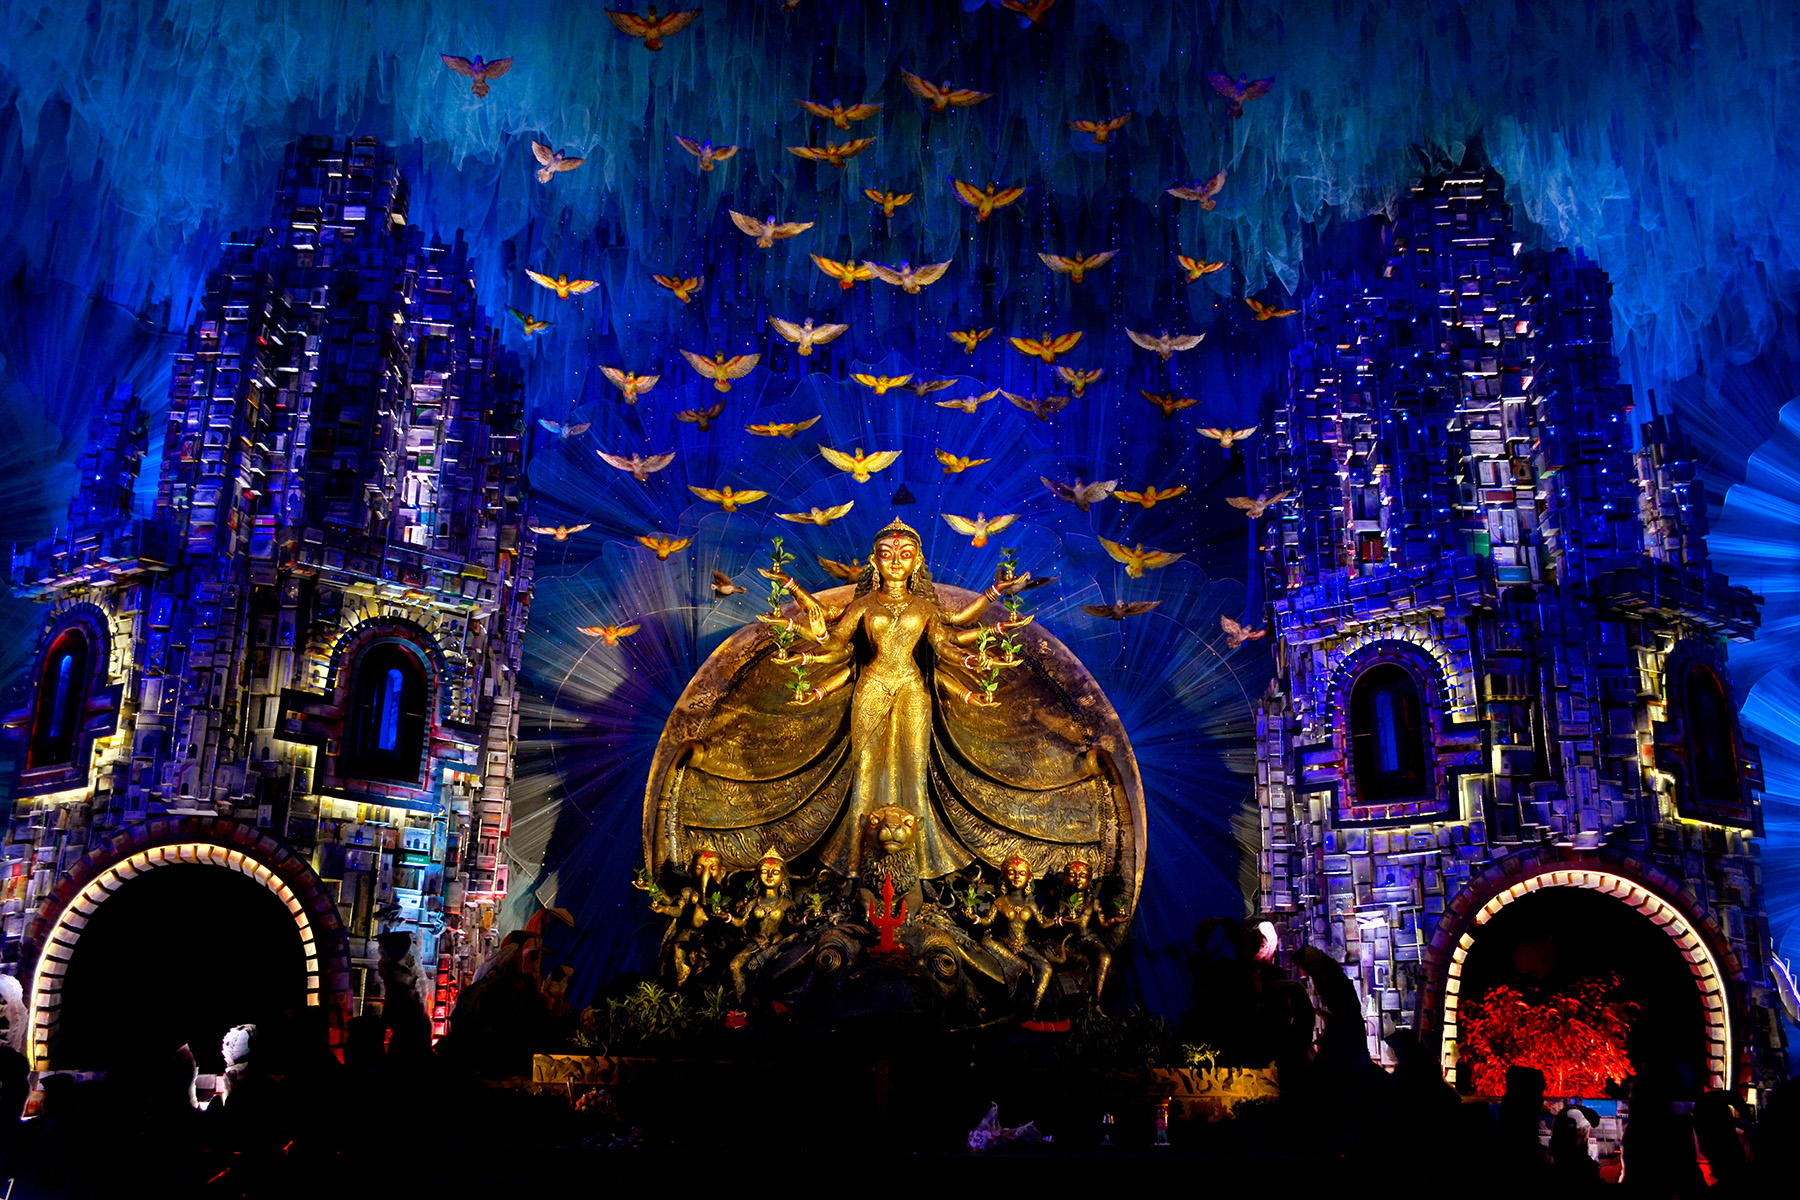 The blue ray with other color of lights gives a deep feeling of heavenly touch, a door step to reach the goddess Durga.